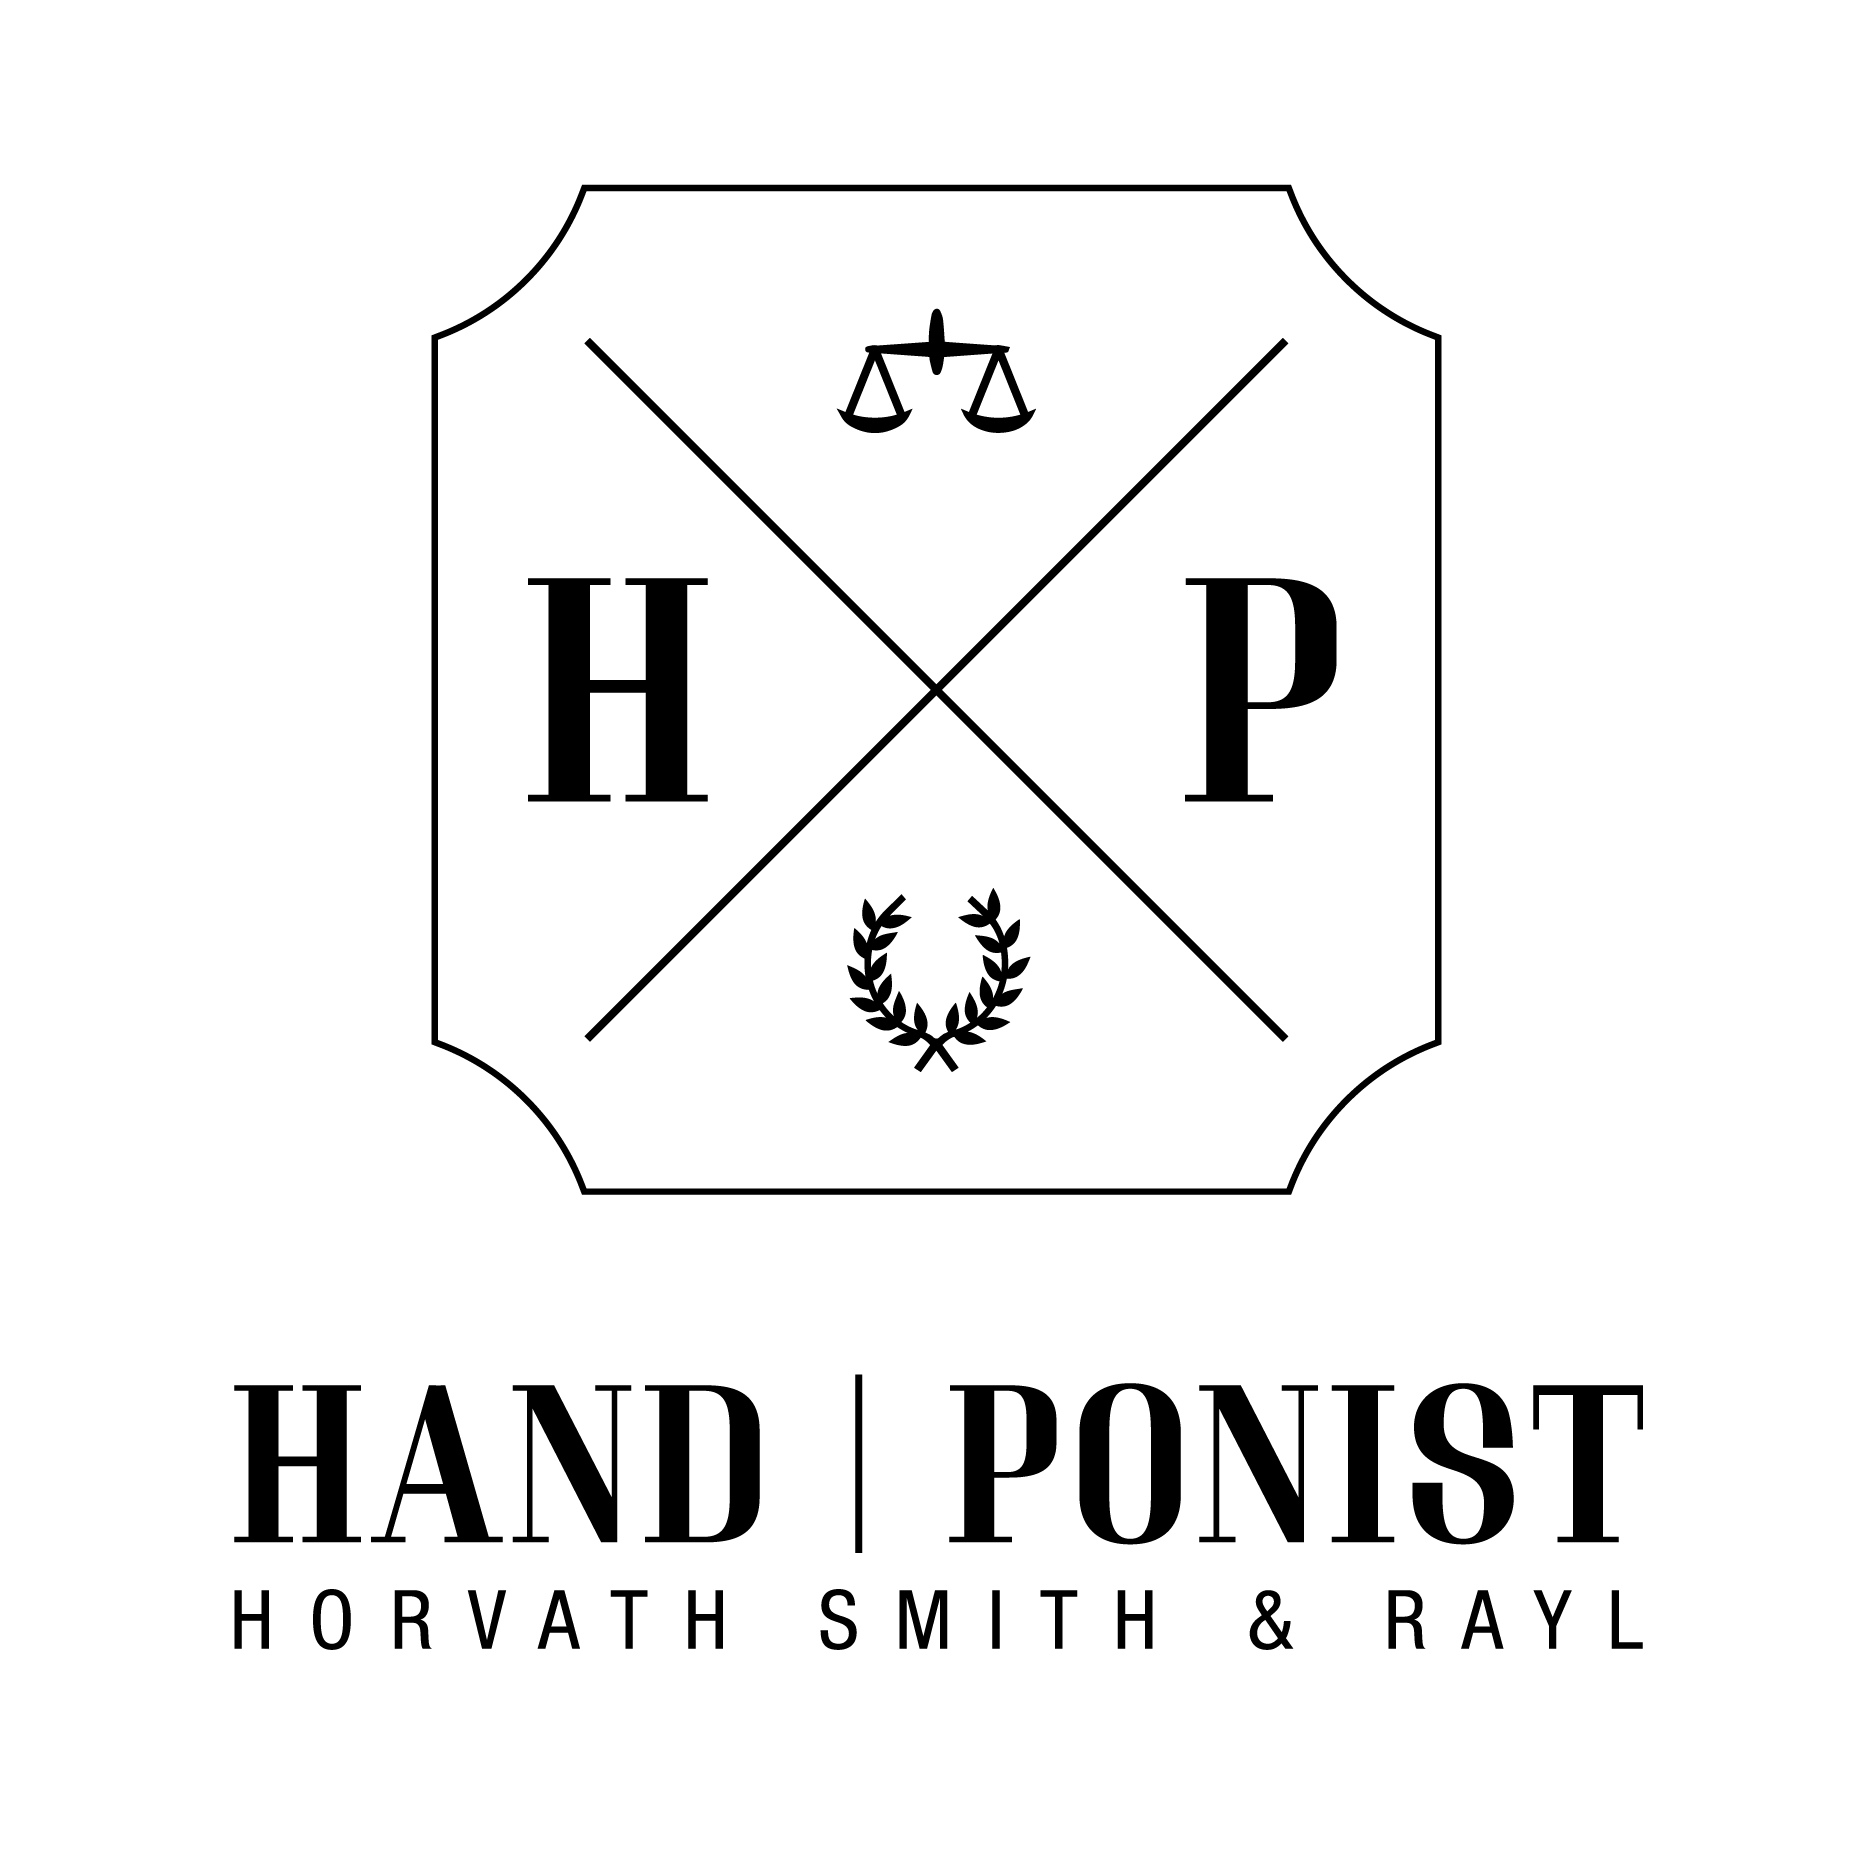 Hand Ponist Horvath Smith & Rayl, LLC